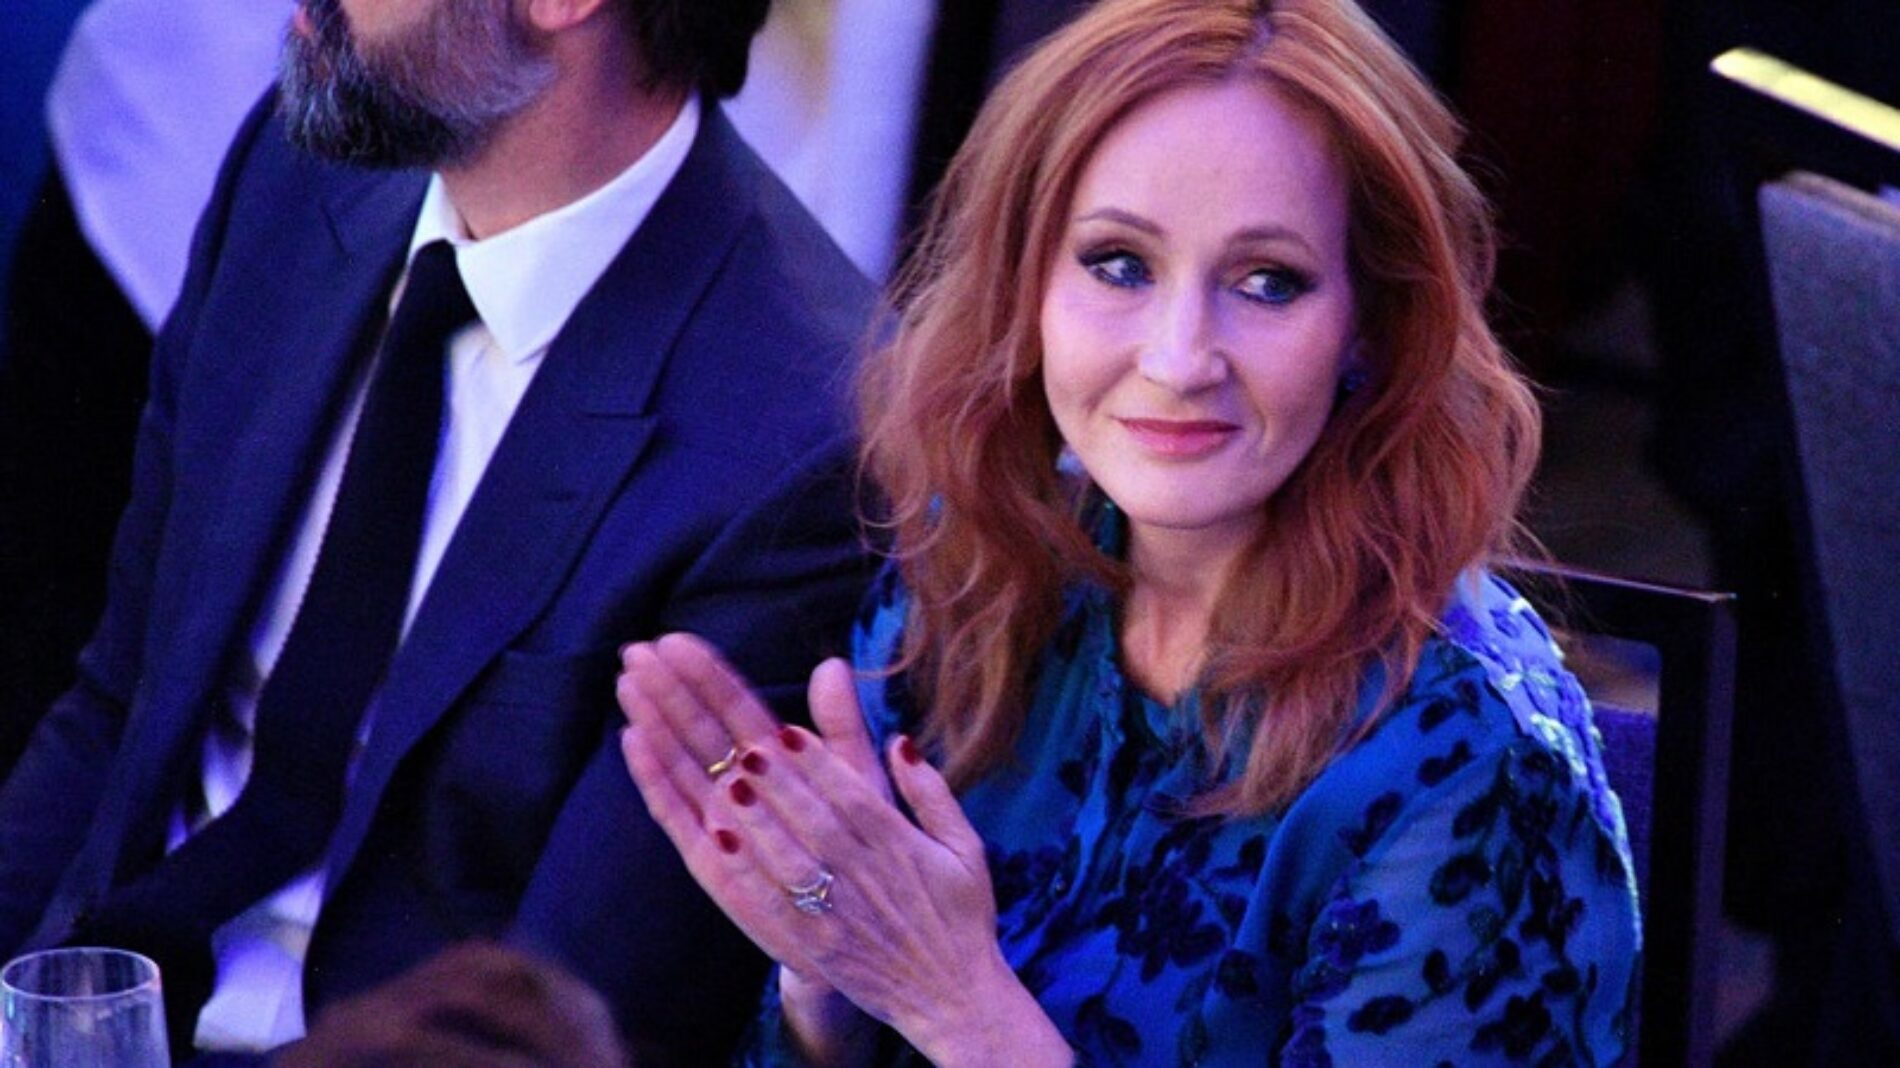 BBC nominates JK Rowling's controversial essay on trans rights for award, defends nomination against backlash